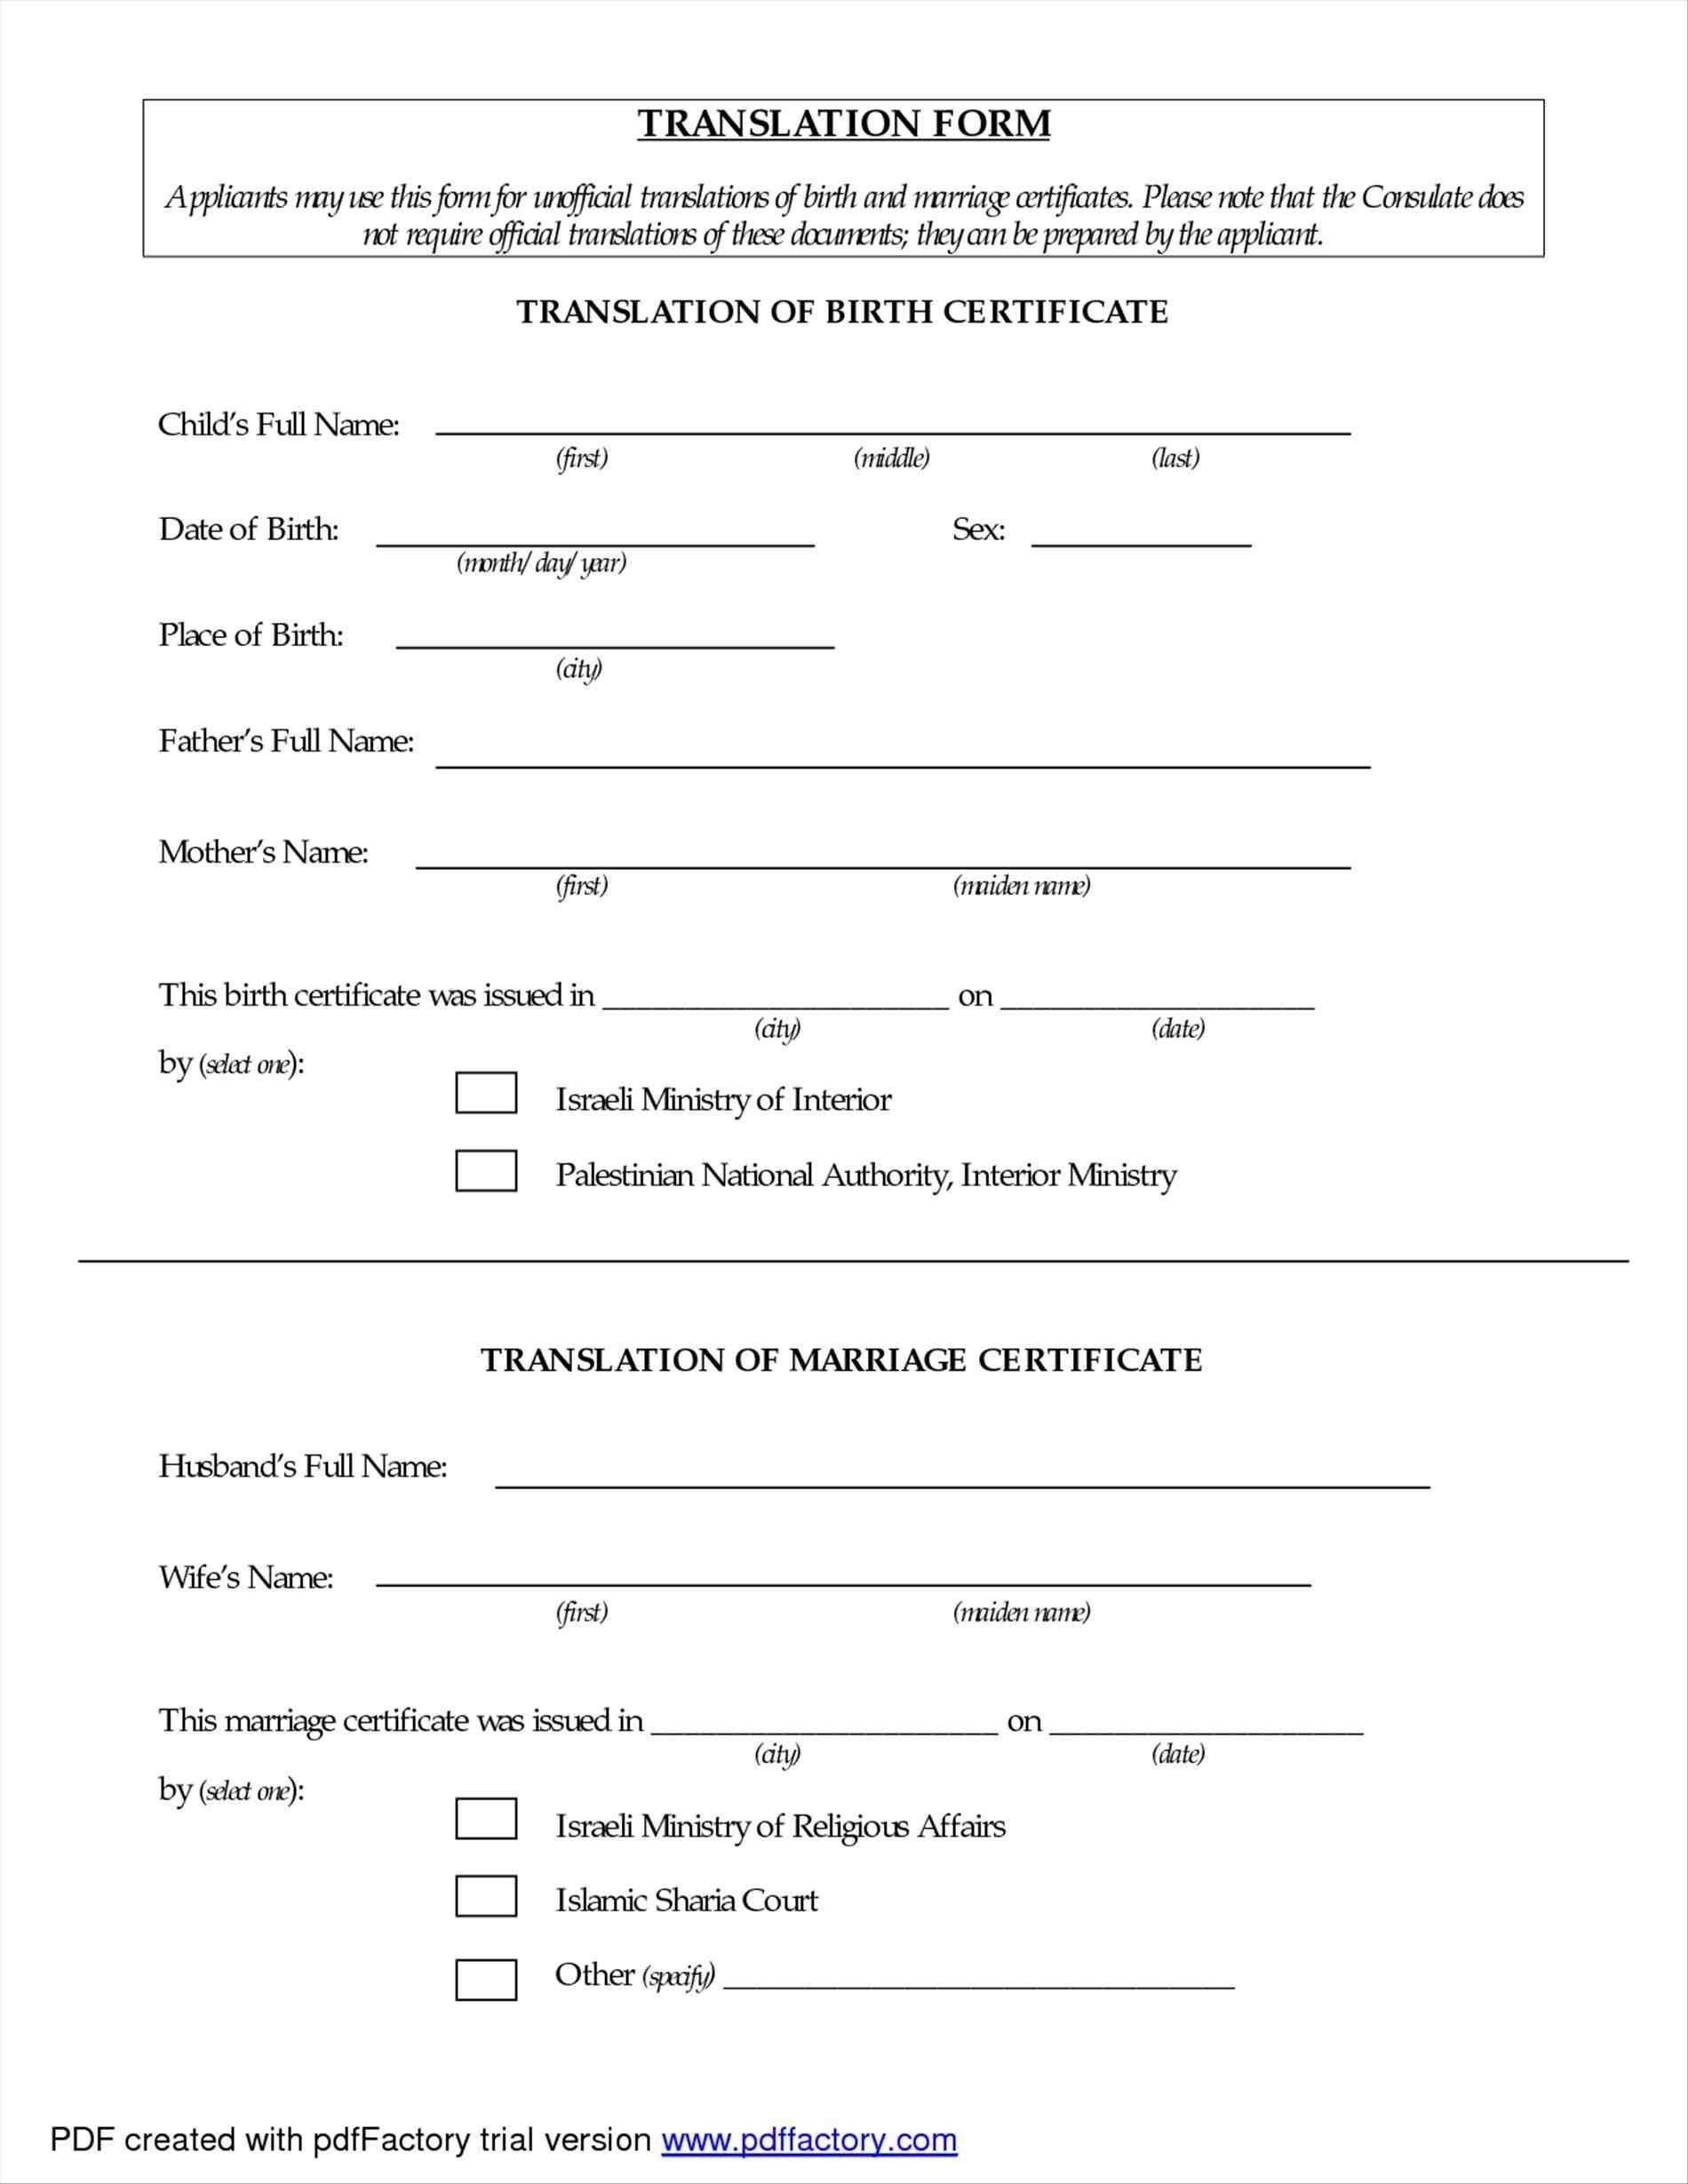 Translate Marriage Certificate From Spanish To English Template For Mexican Marriage Certificate Translation Template